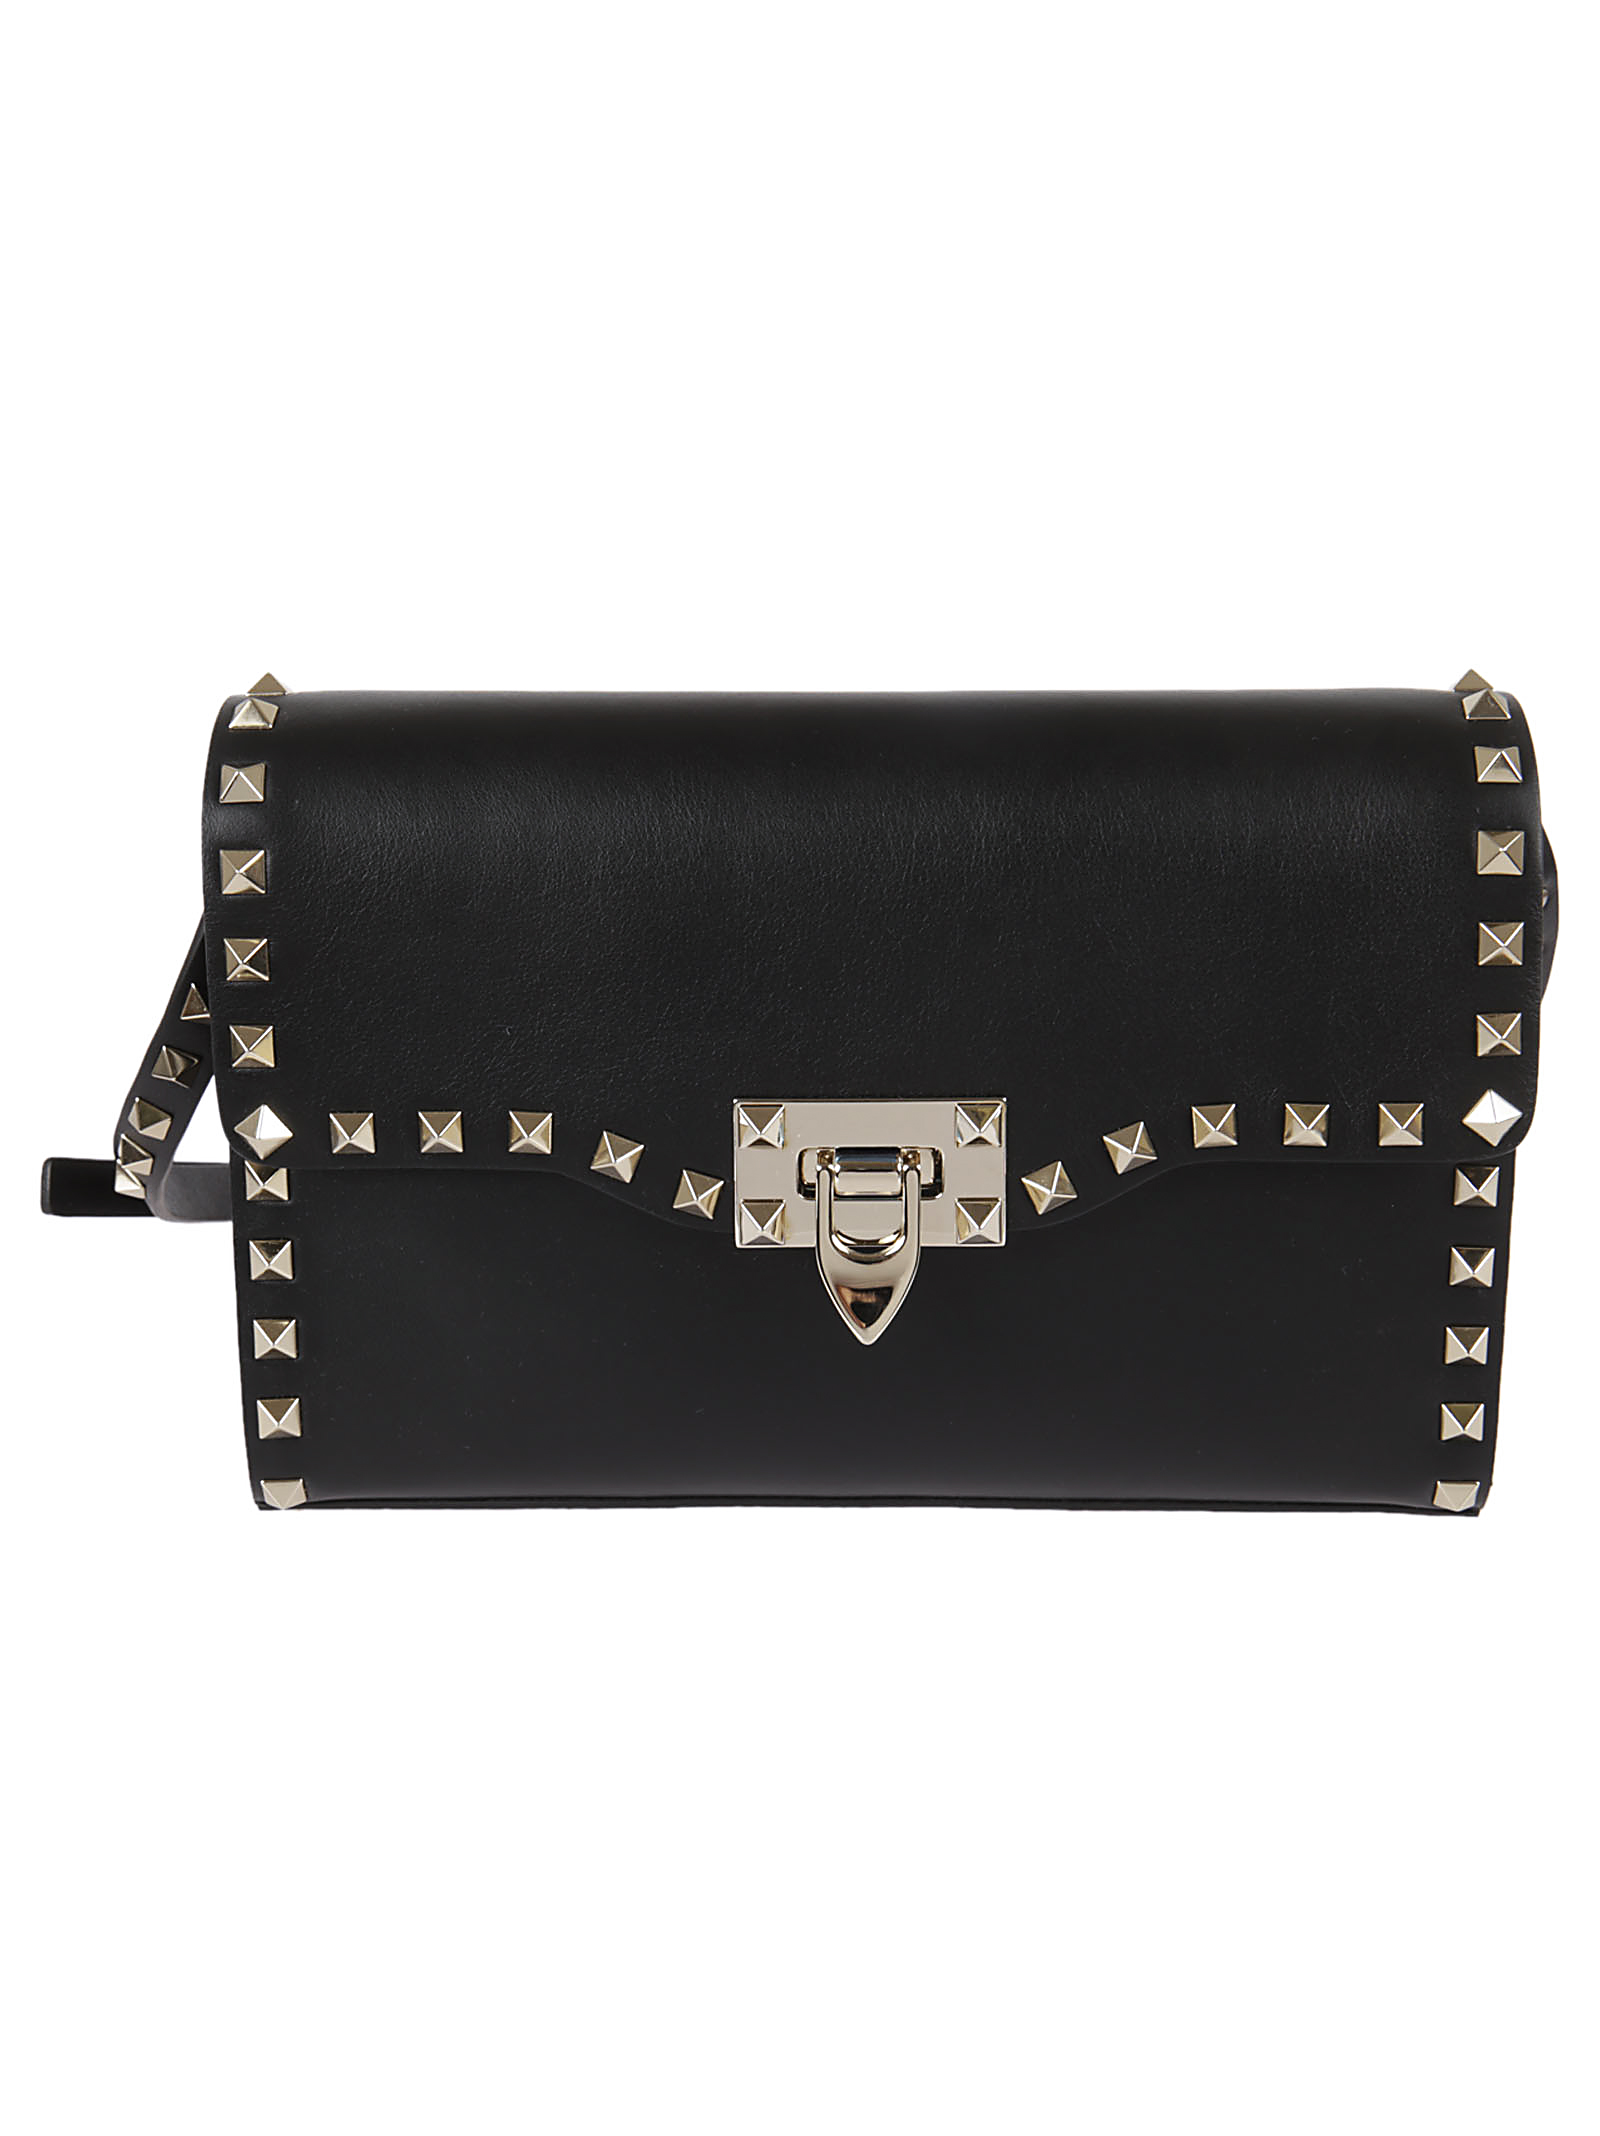 Valentino Garavani Valentino Garavani Medium Rockstud Shoulder Bag